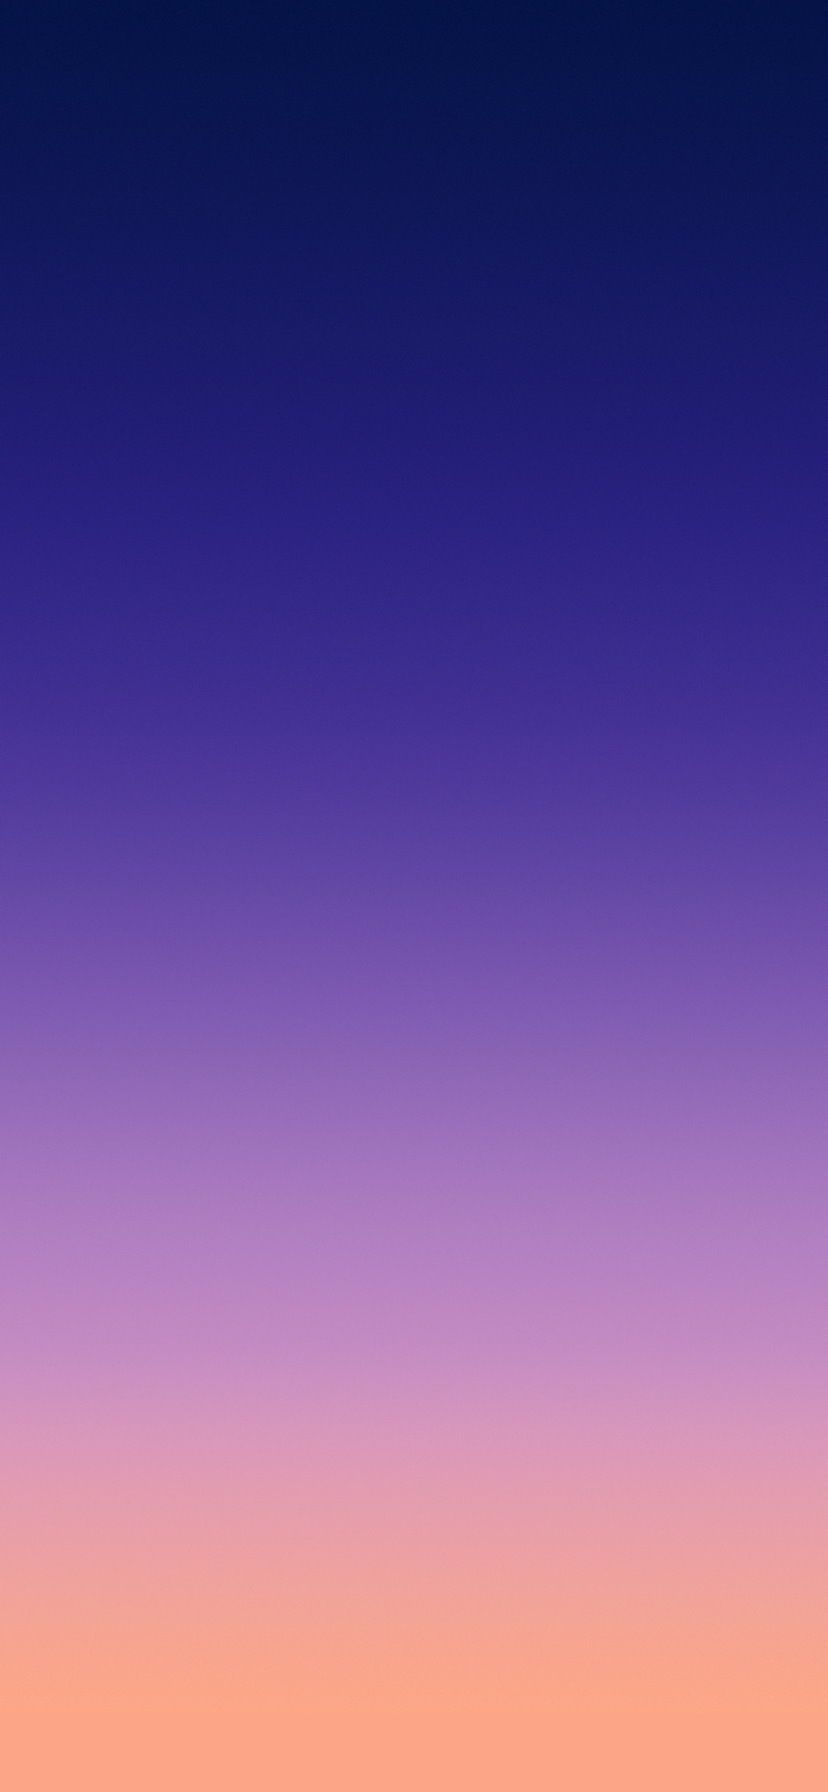 828x1792 Wallpapers iPhone XR - Pack 1 in 2019 | Color wallpaper ...